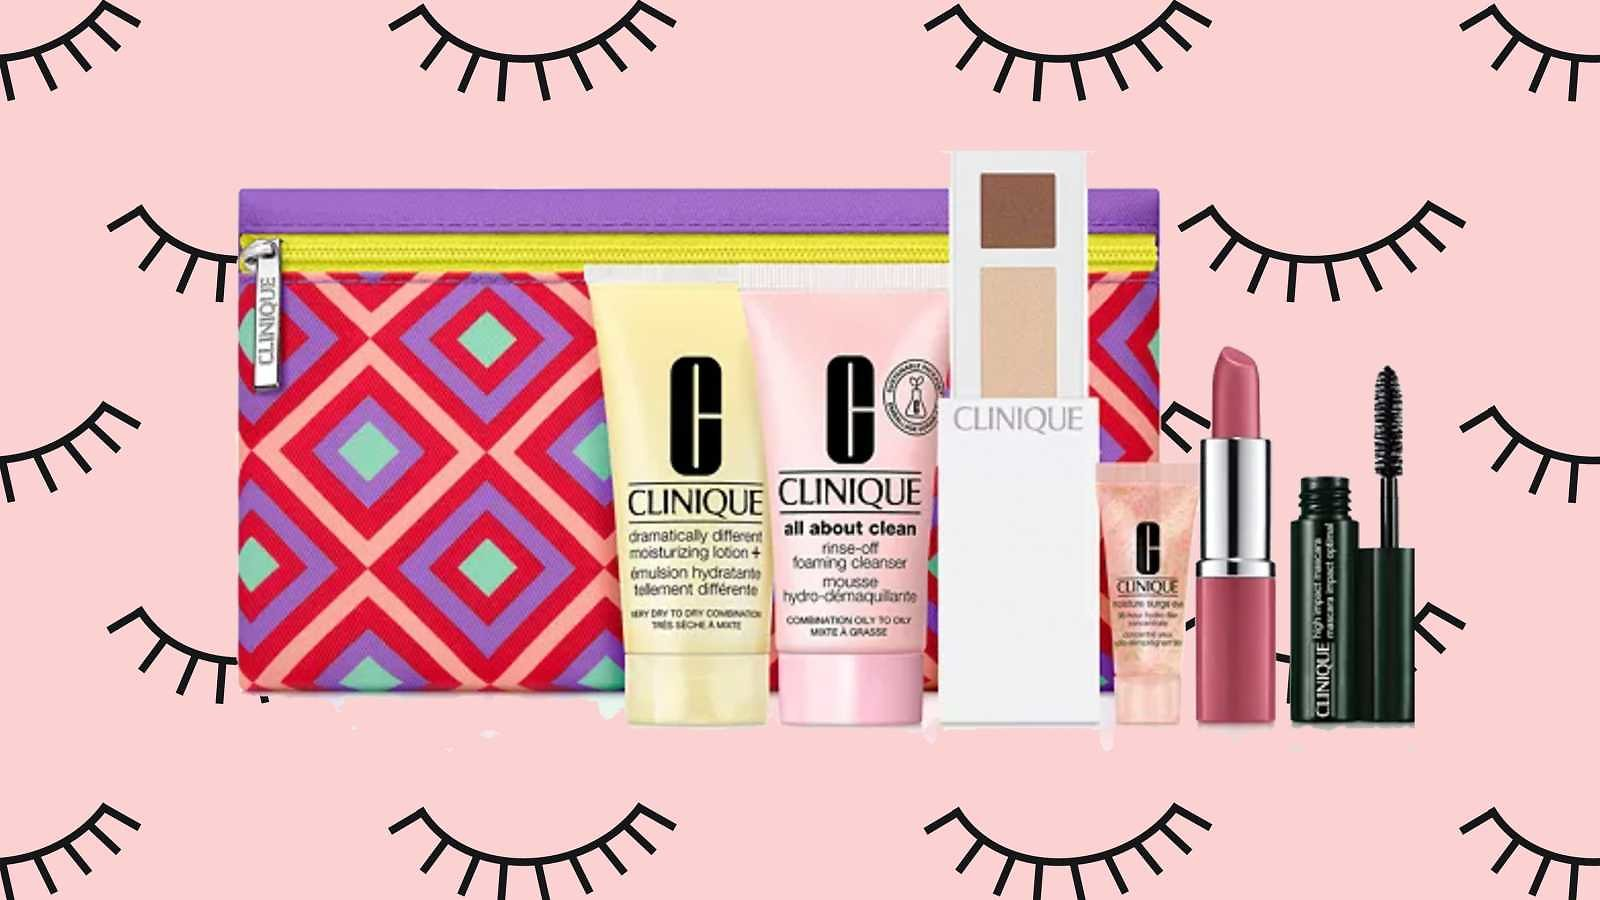 You Can Get a Free 7-piece Clinique Gift When You Buy Makeup At Macy's